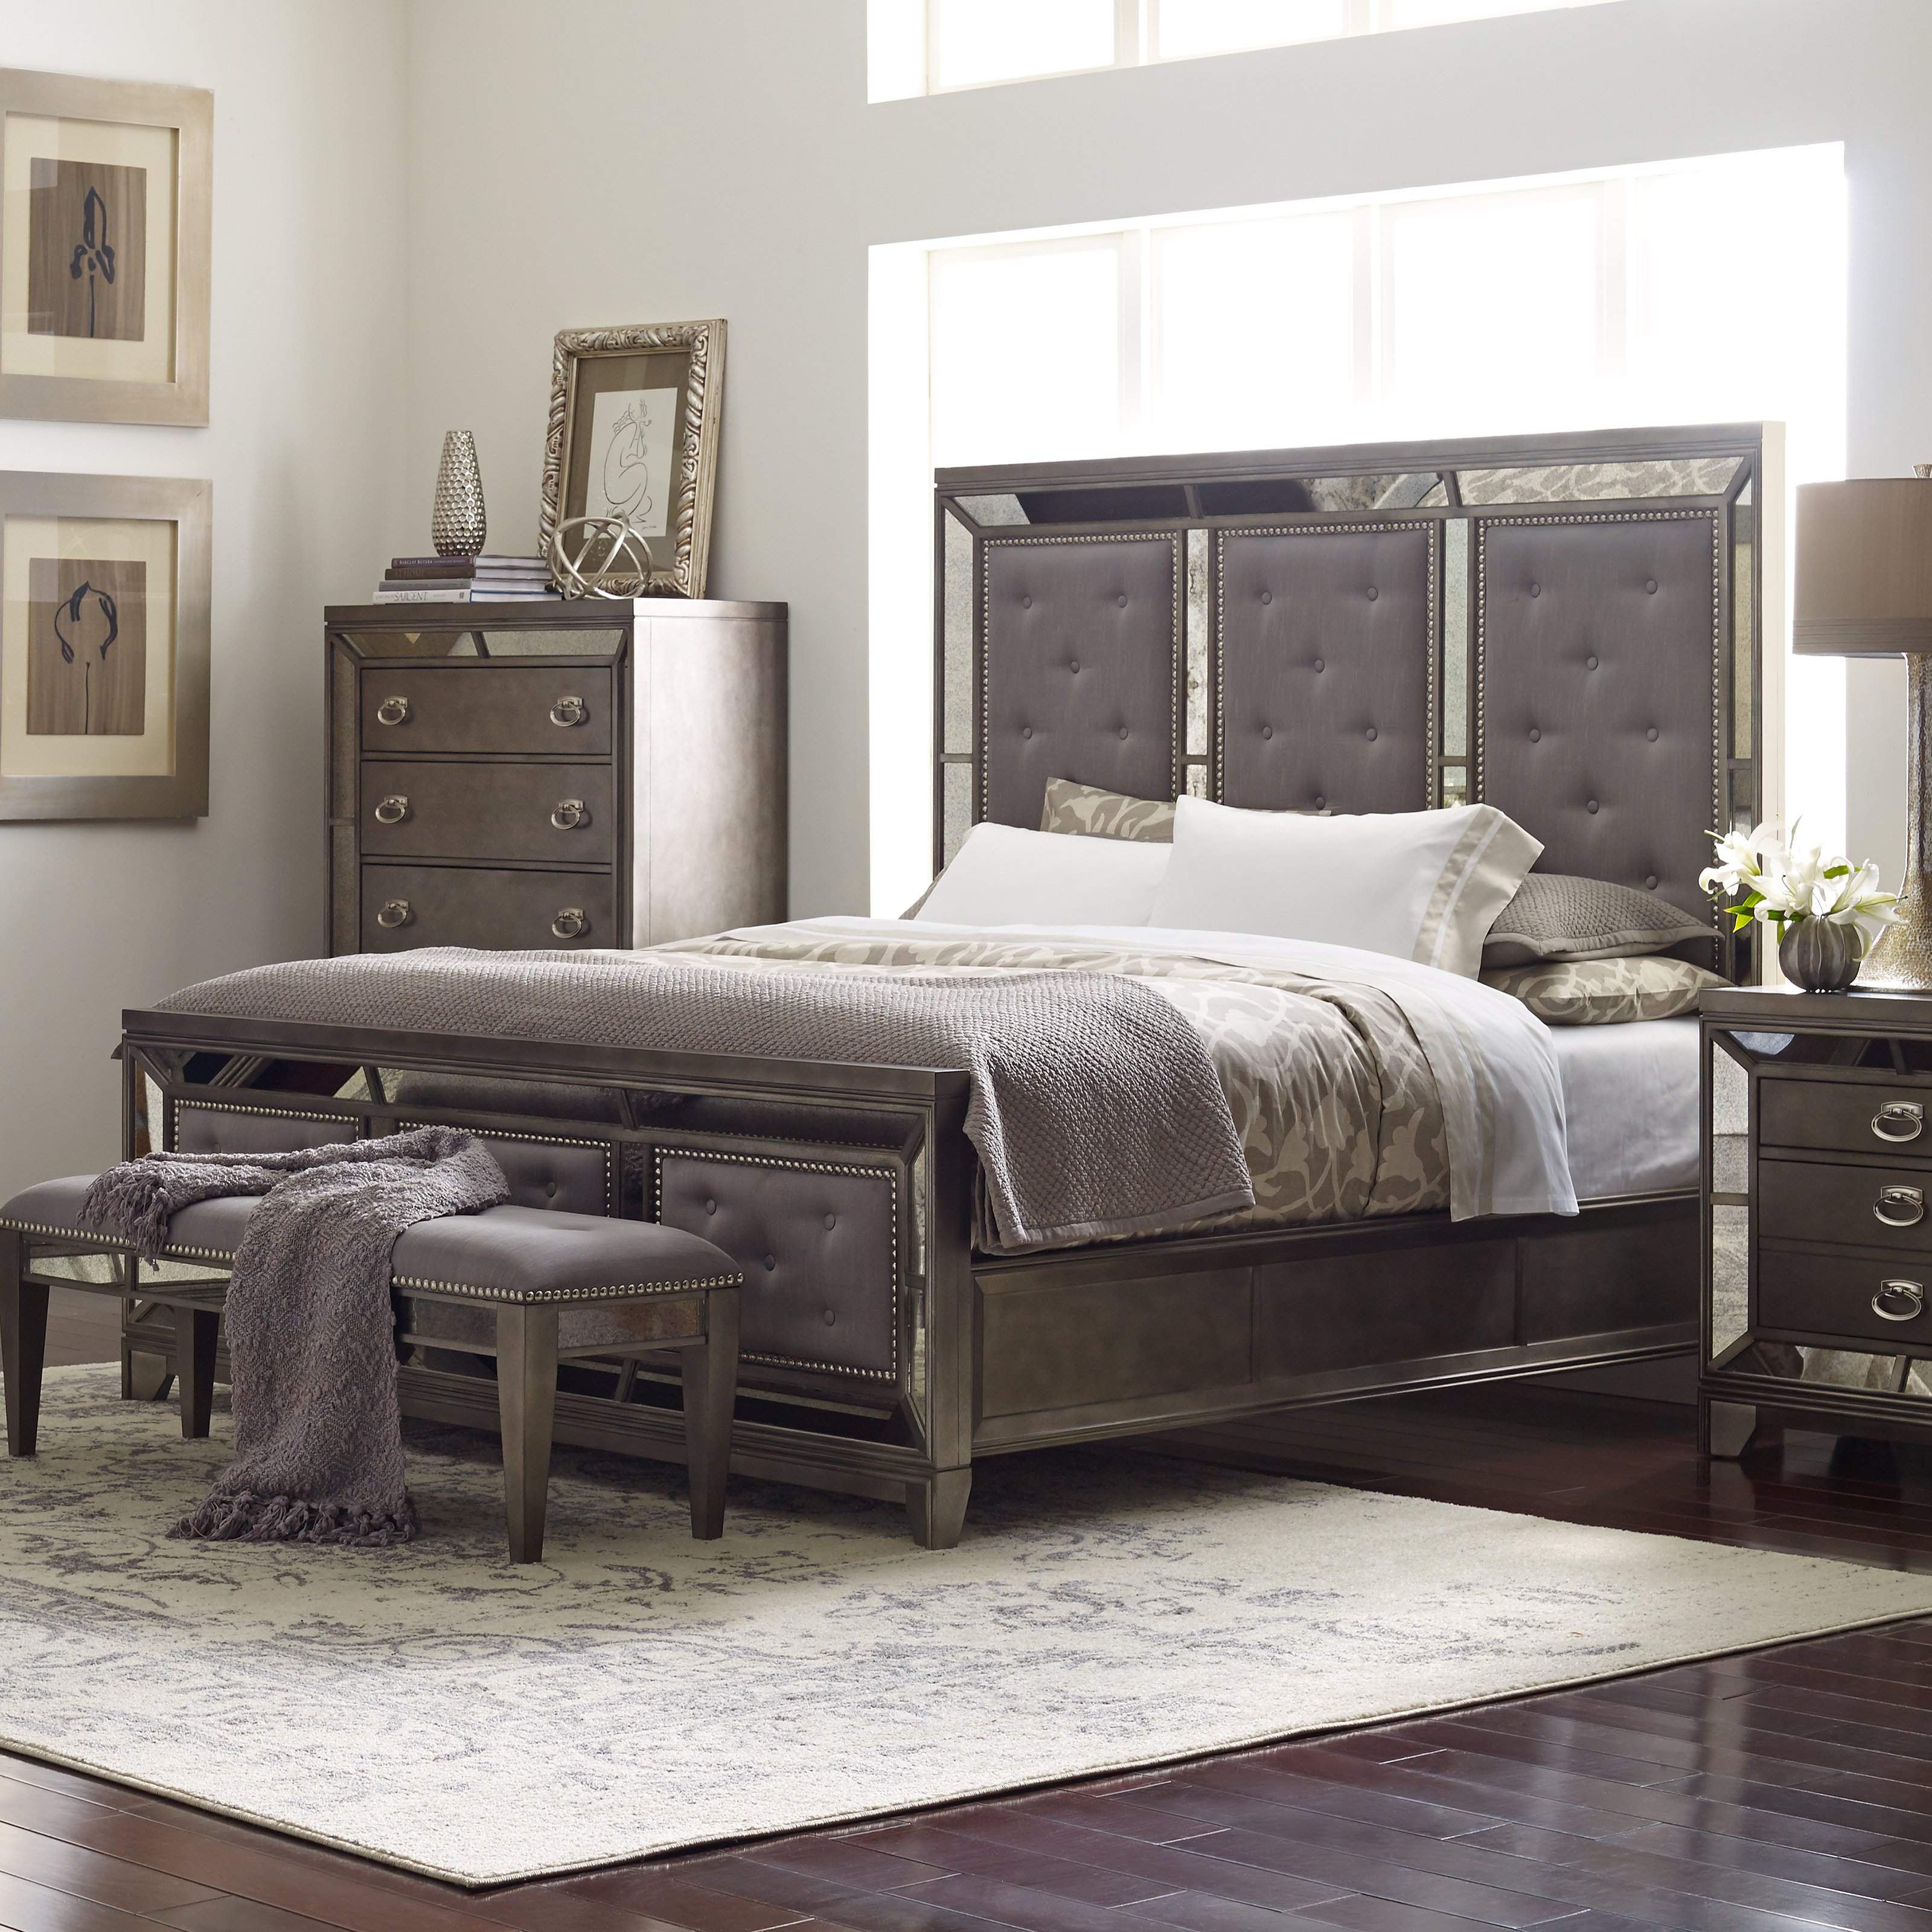 Avalon Furniture Lenox Upholstered Panel Bed - Queen